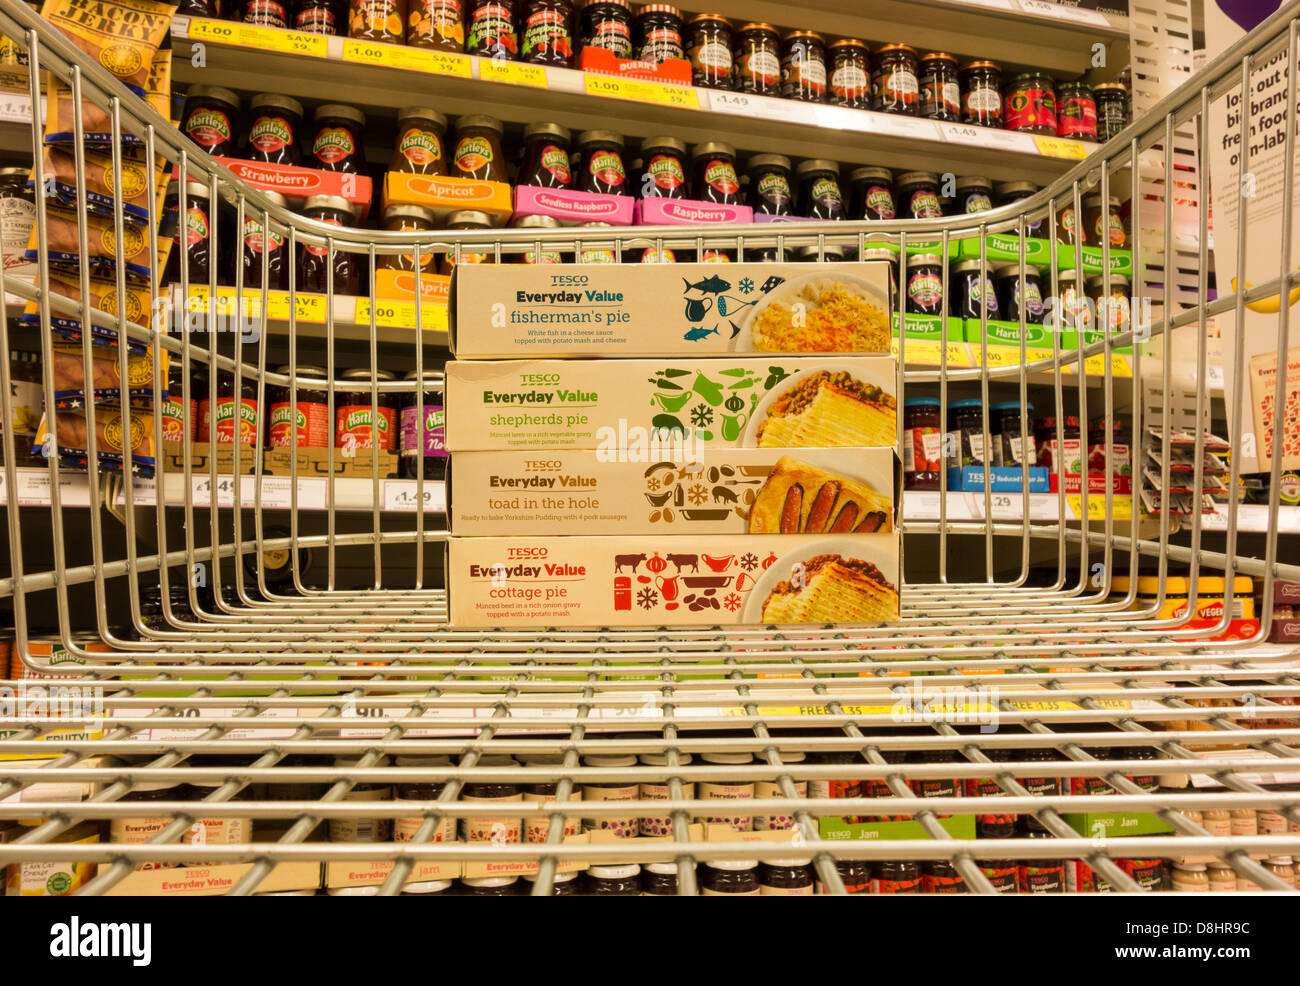 Tesco's Everyday Value own label products in shopping trolley in Tesco supermarket. England, UK - Stock Image